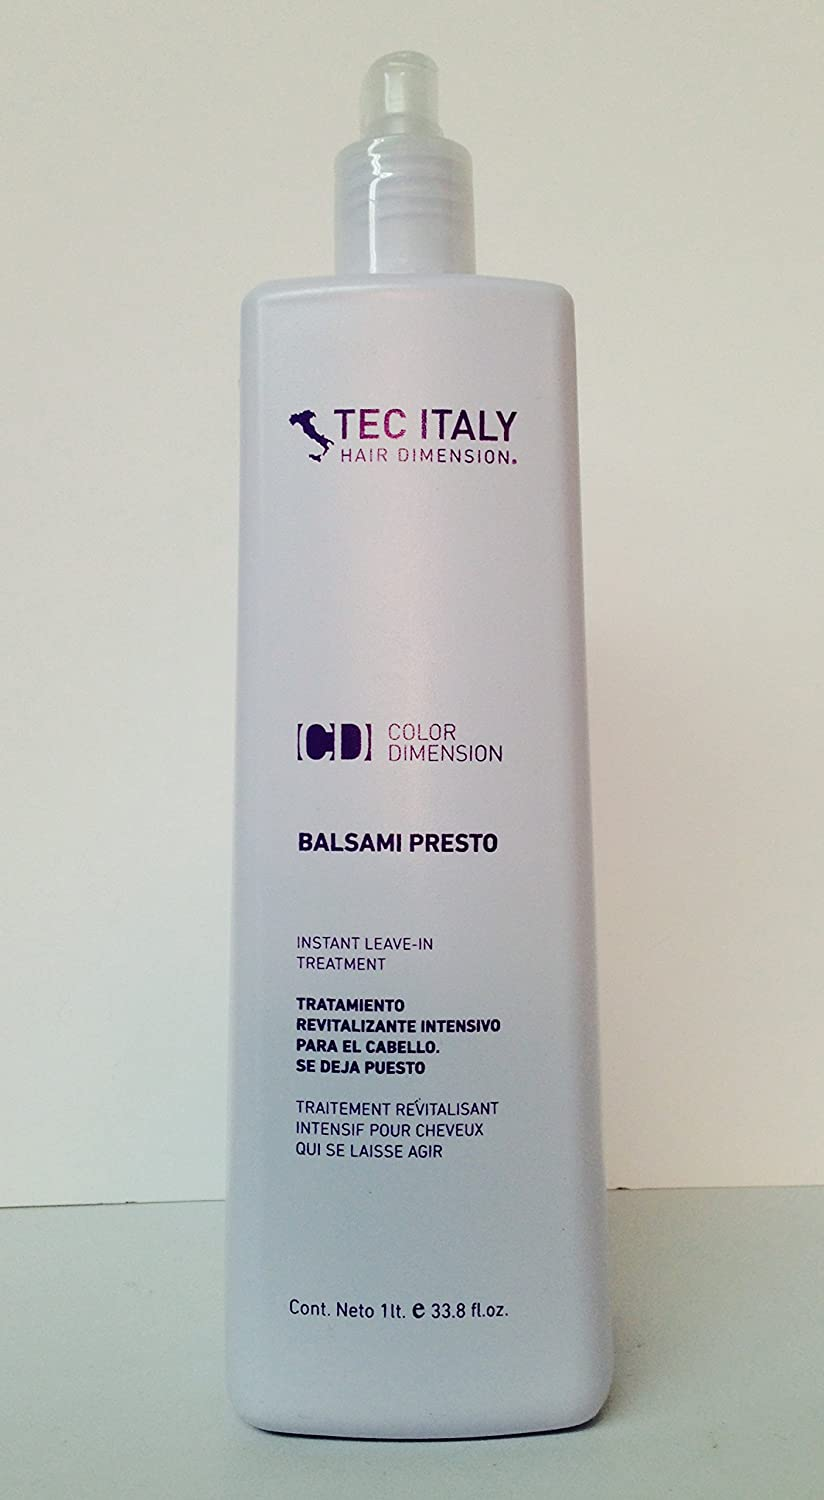 Color art by tec italy - Amazon Com Tec Italy Color Balsami Presto Instant Leave In Treatment 33 8 Oz Beauty